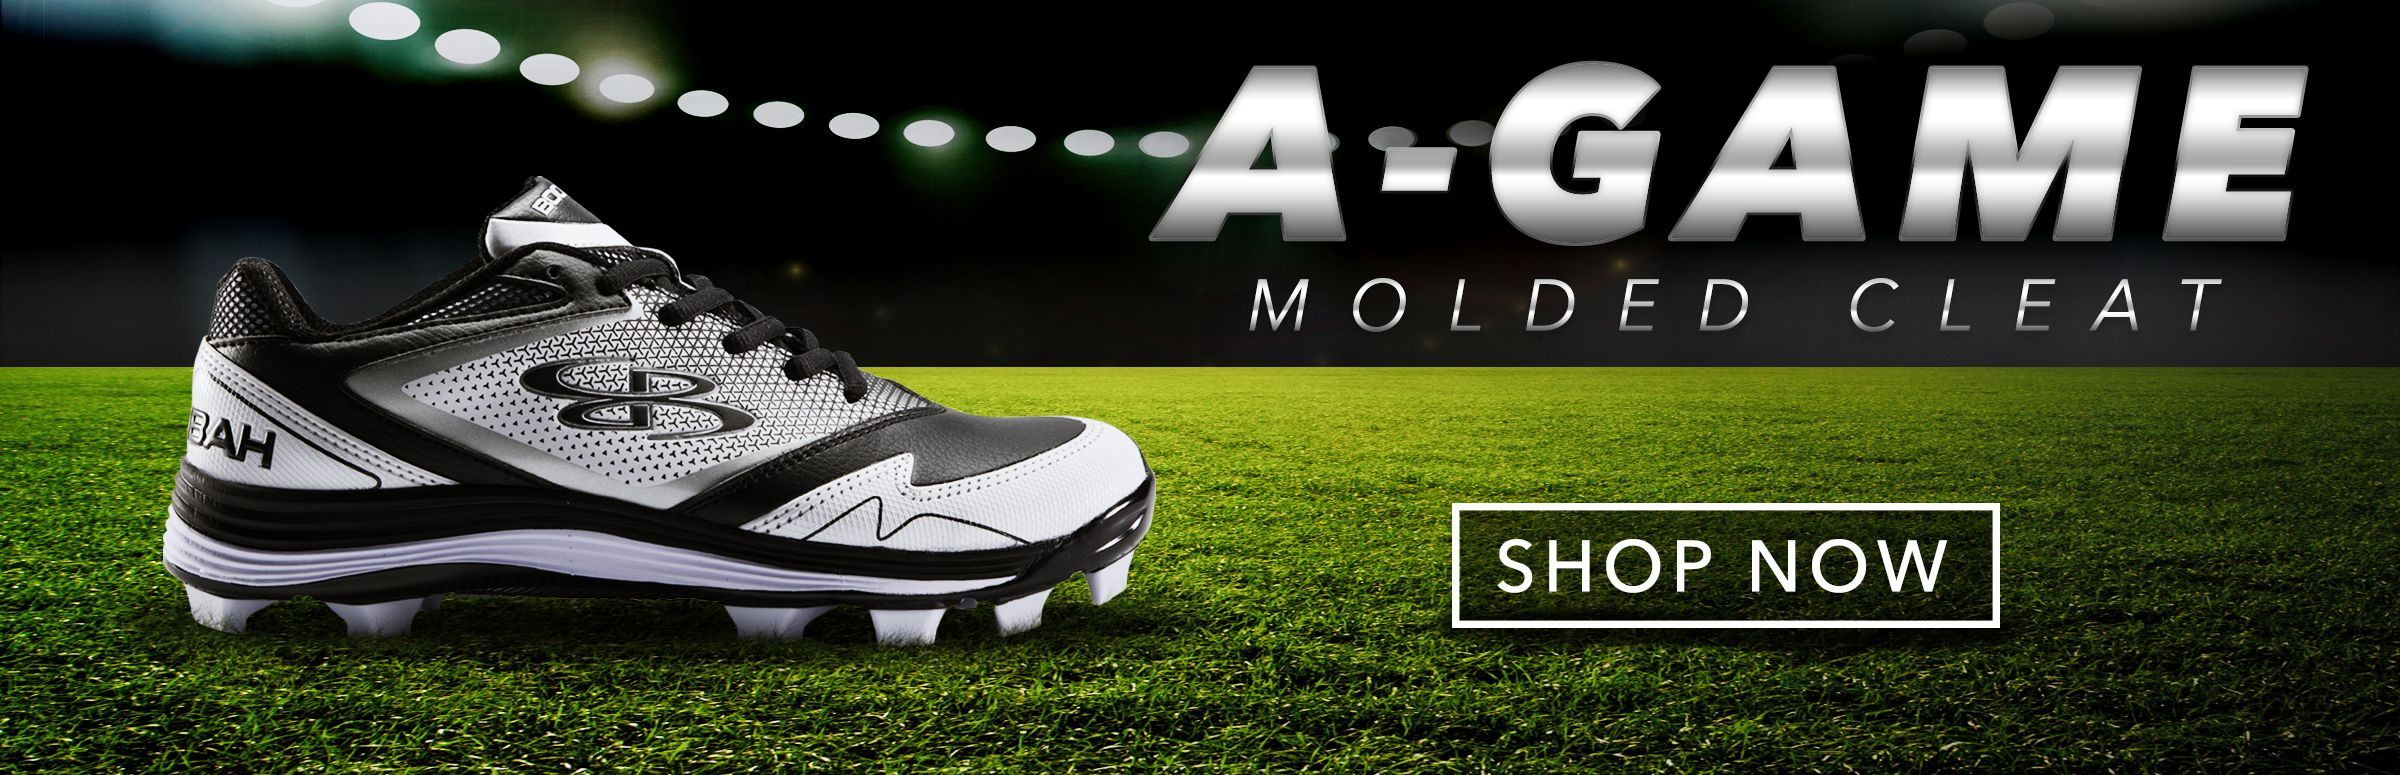 Boombah A-Game Molded Cleats